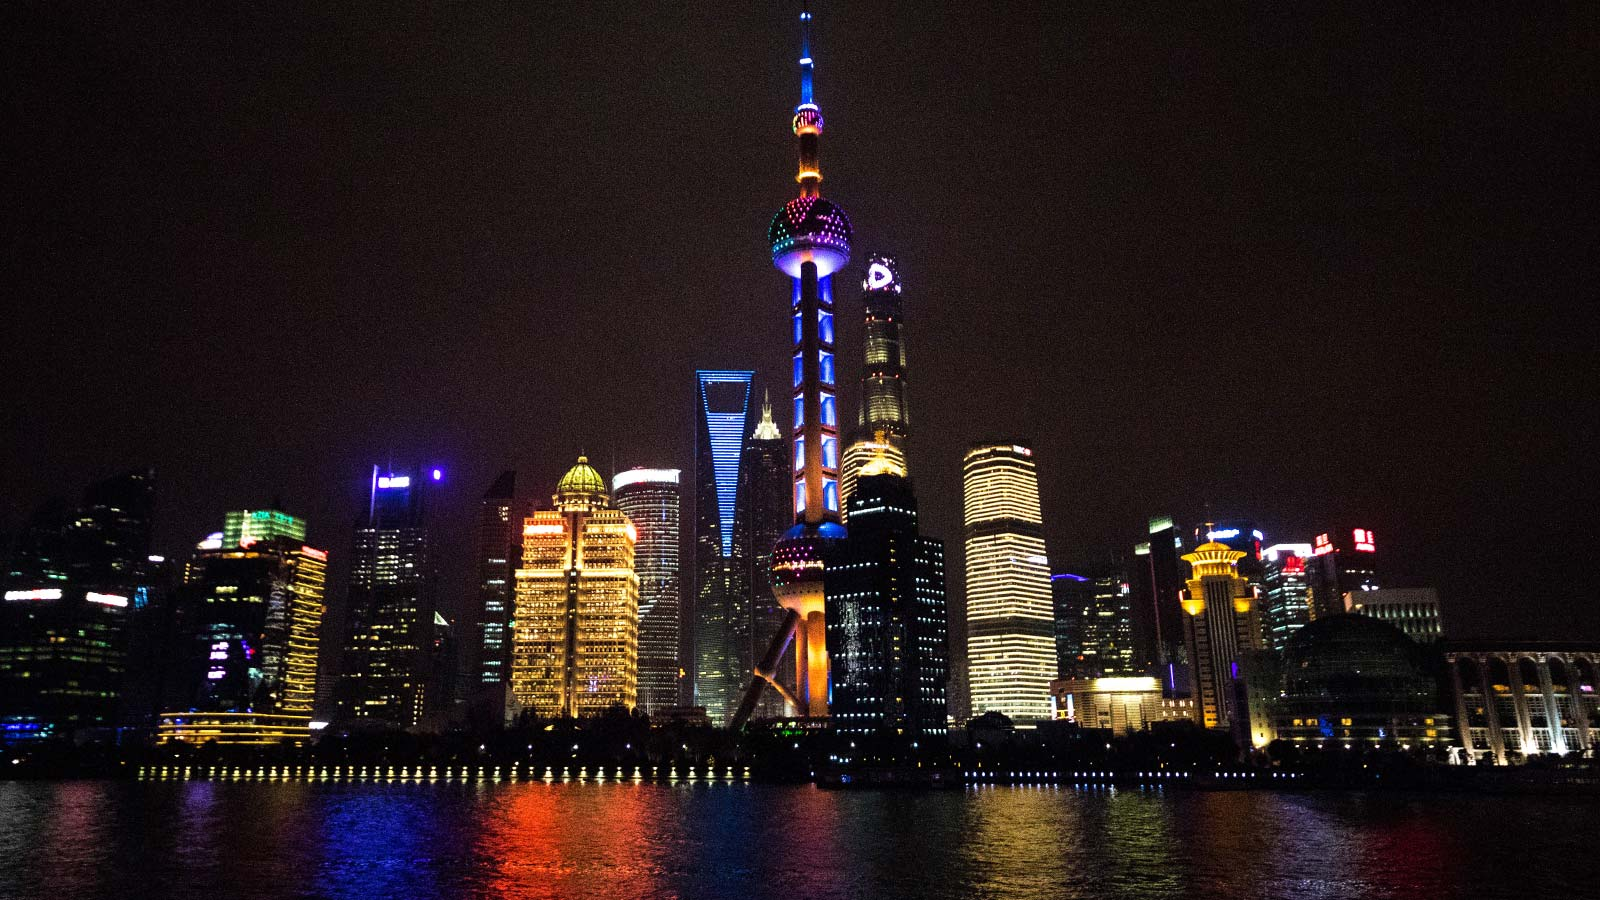 Airport layovers can be a major hassle. But during our 24-hour layover in Shanghai China, we decided to make the best of it and see how many things to do in Shanghai that we could pack into our schedule. It turns out that we could do in WAY more than we expected.